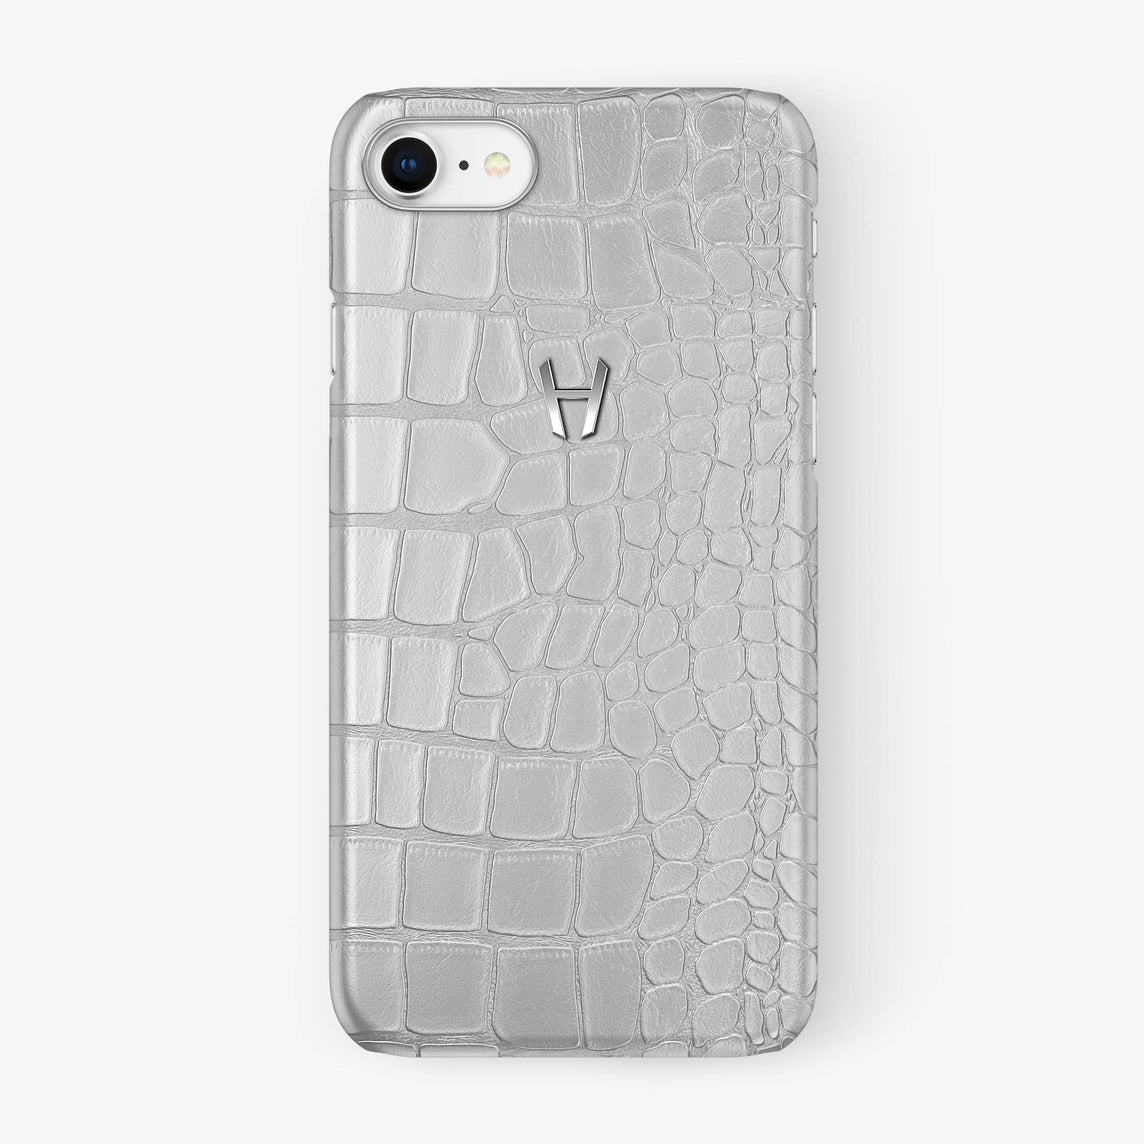 Alligator [iPhone Case] [model:iphone-7-8-case] [colour:white] [finishing:stainless-steel] - Hadoro